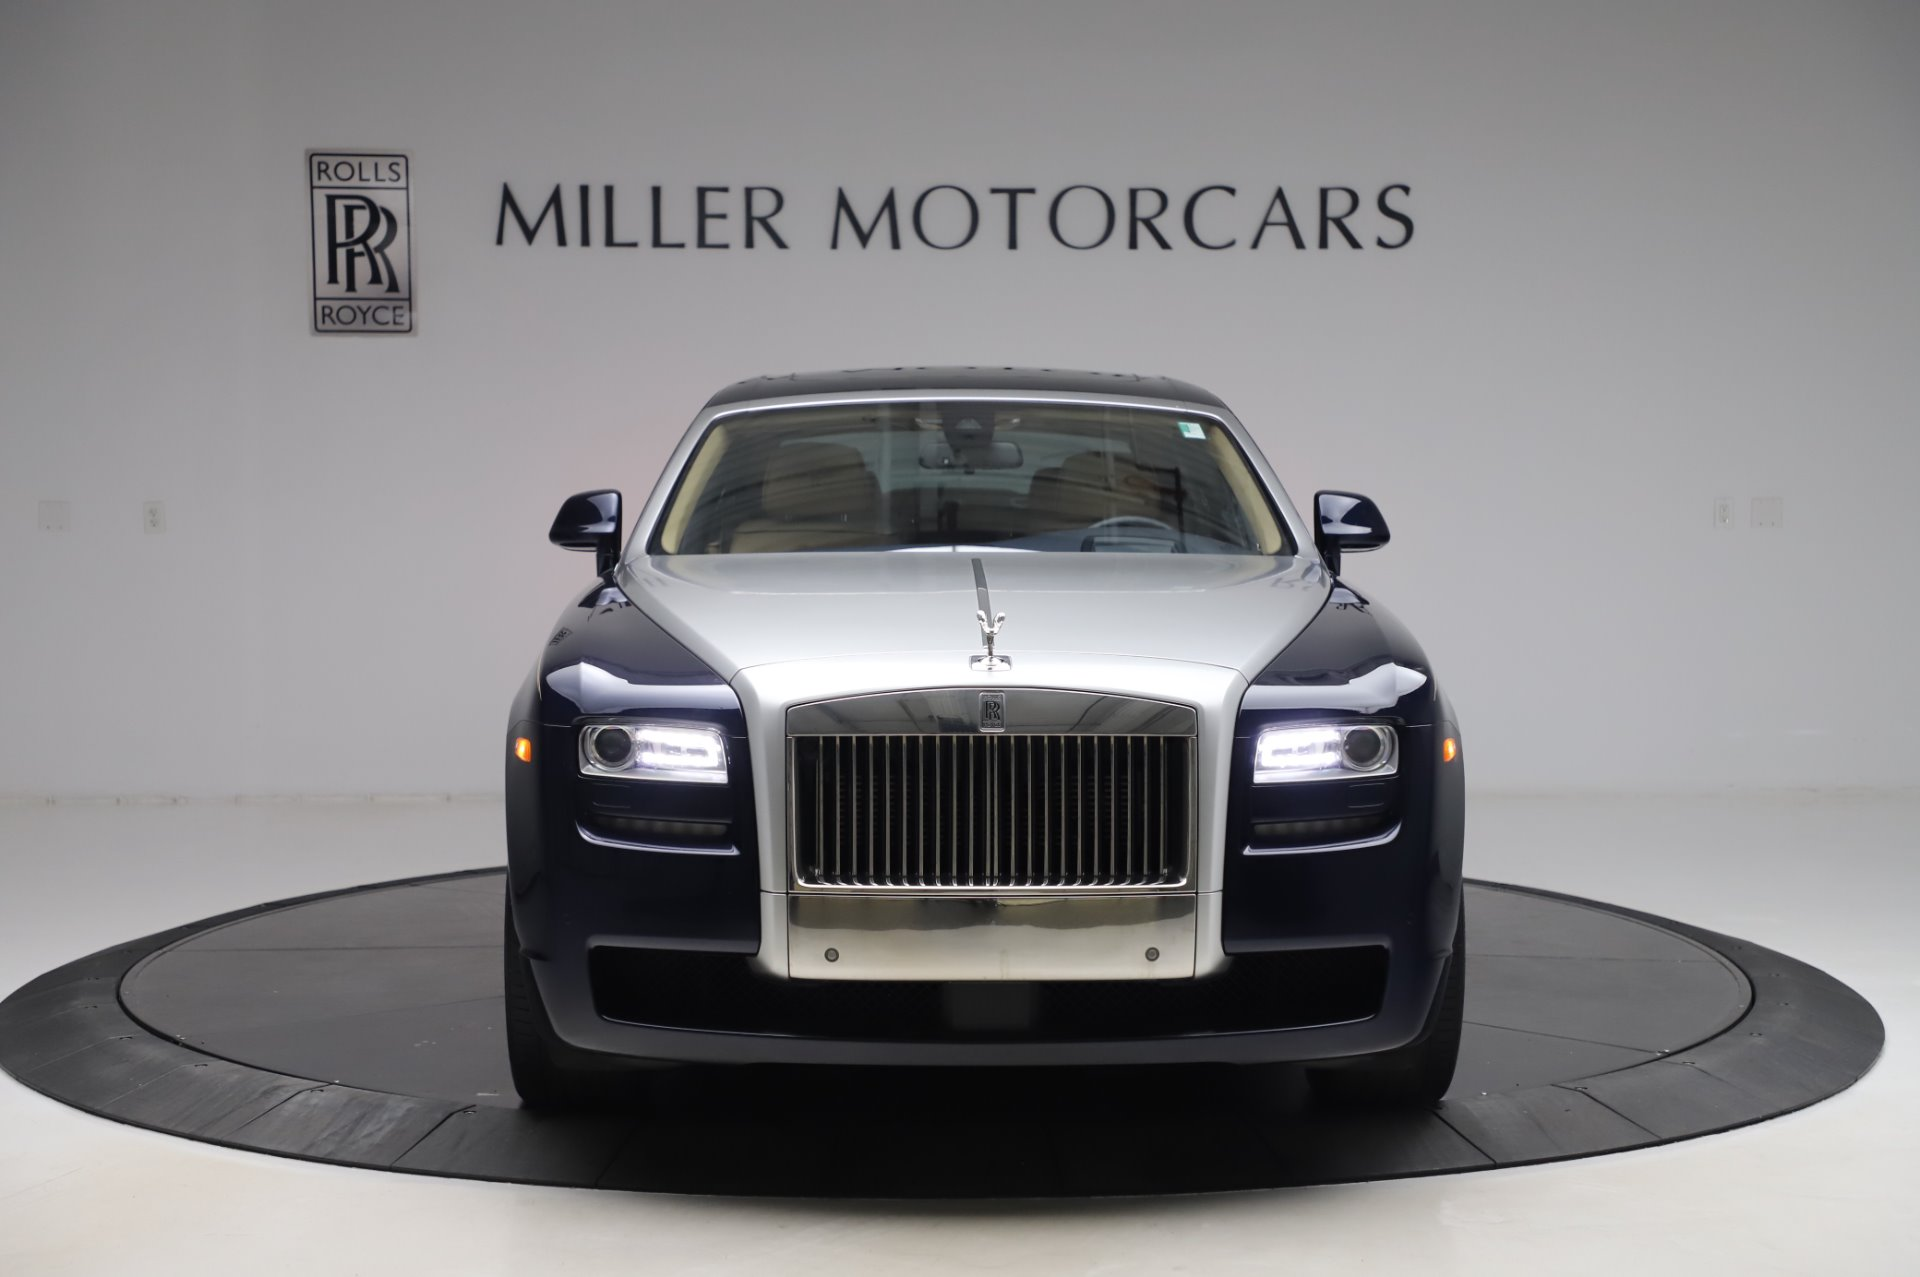 Used 2014 Rolls-Royce Ghost V-Spec For Sale In Westport, CT 858_p2